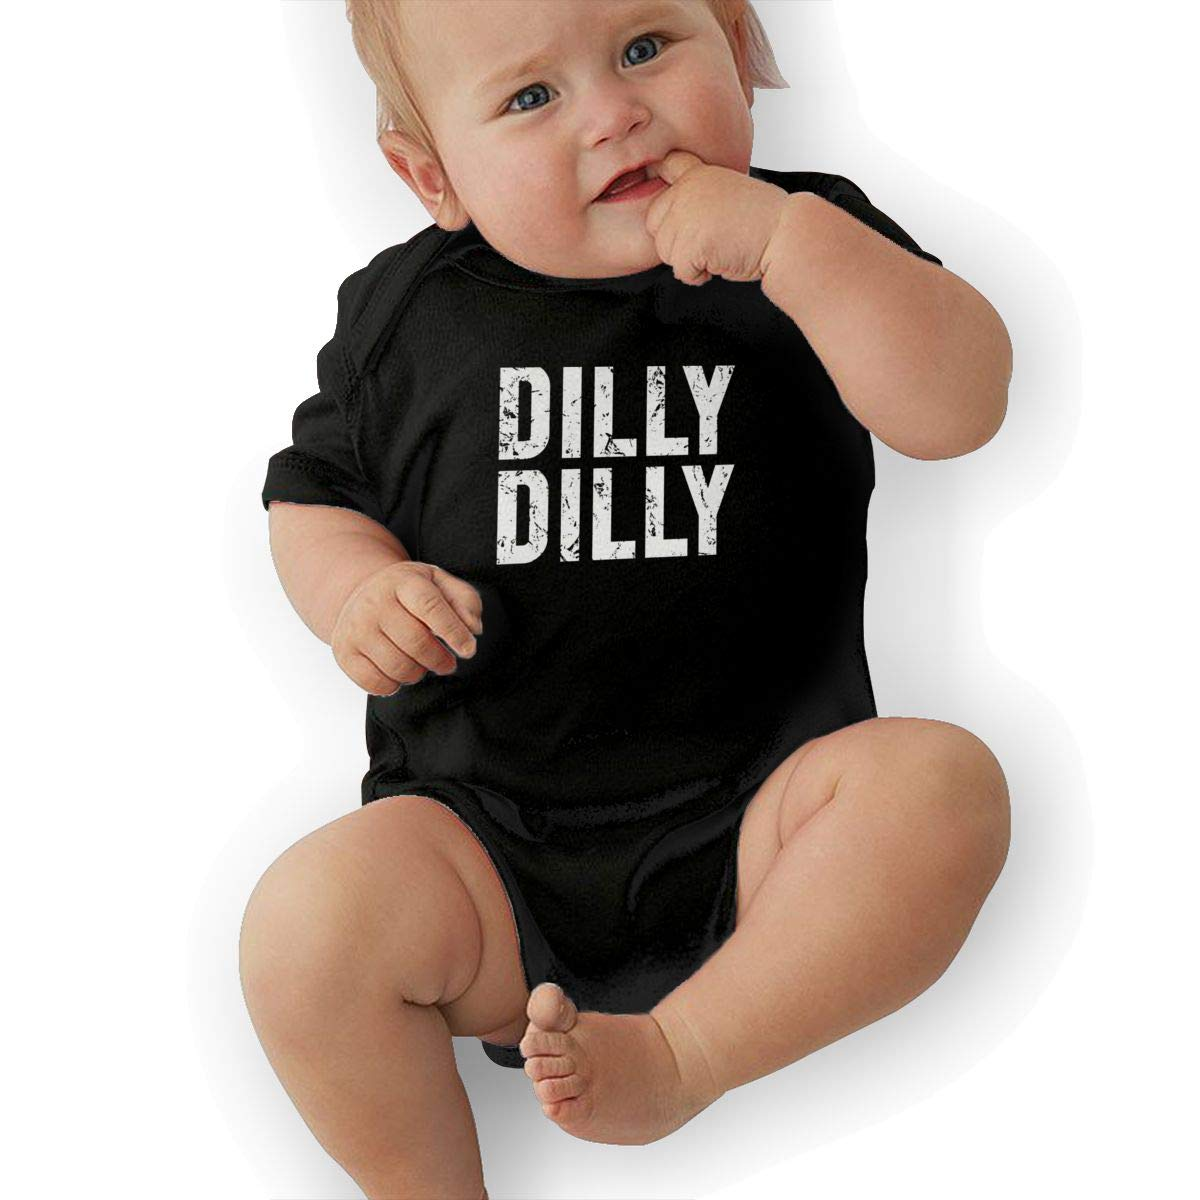 Xuforget Dilly Dilly Funny Beer Drinking Babys Boys /& Girls Short Sleeve Bodysuit Babys